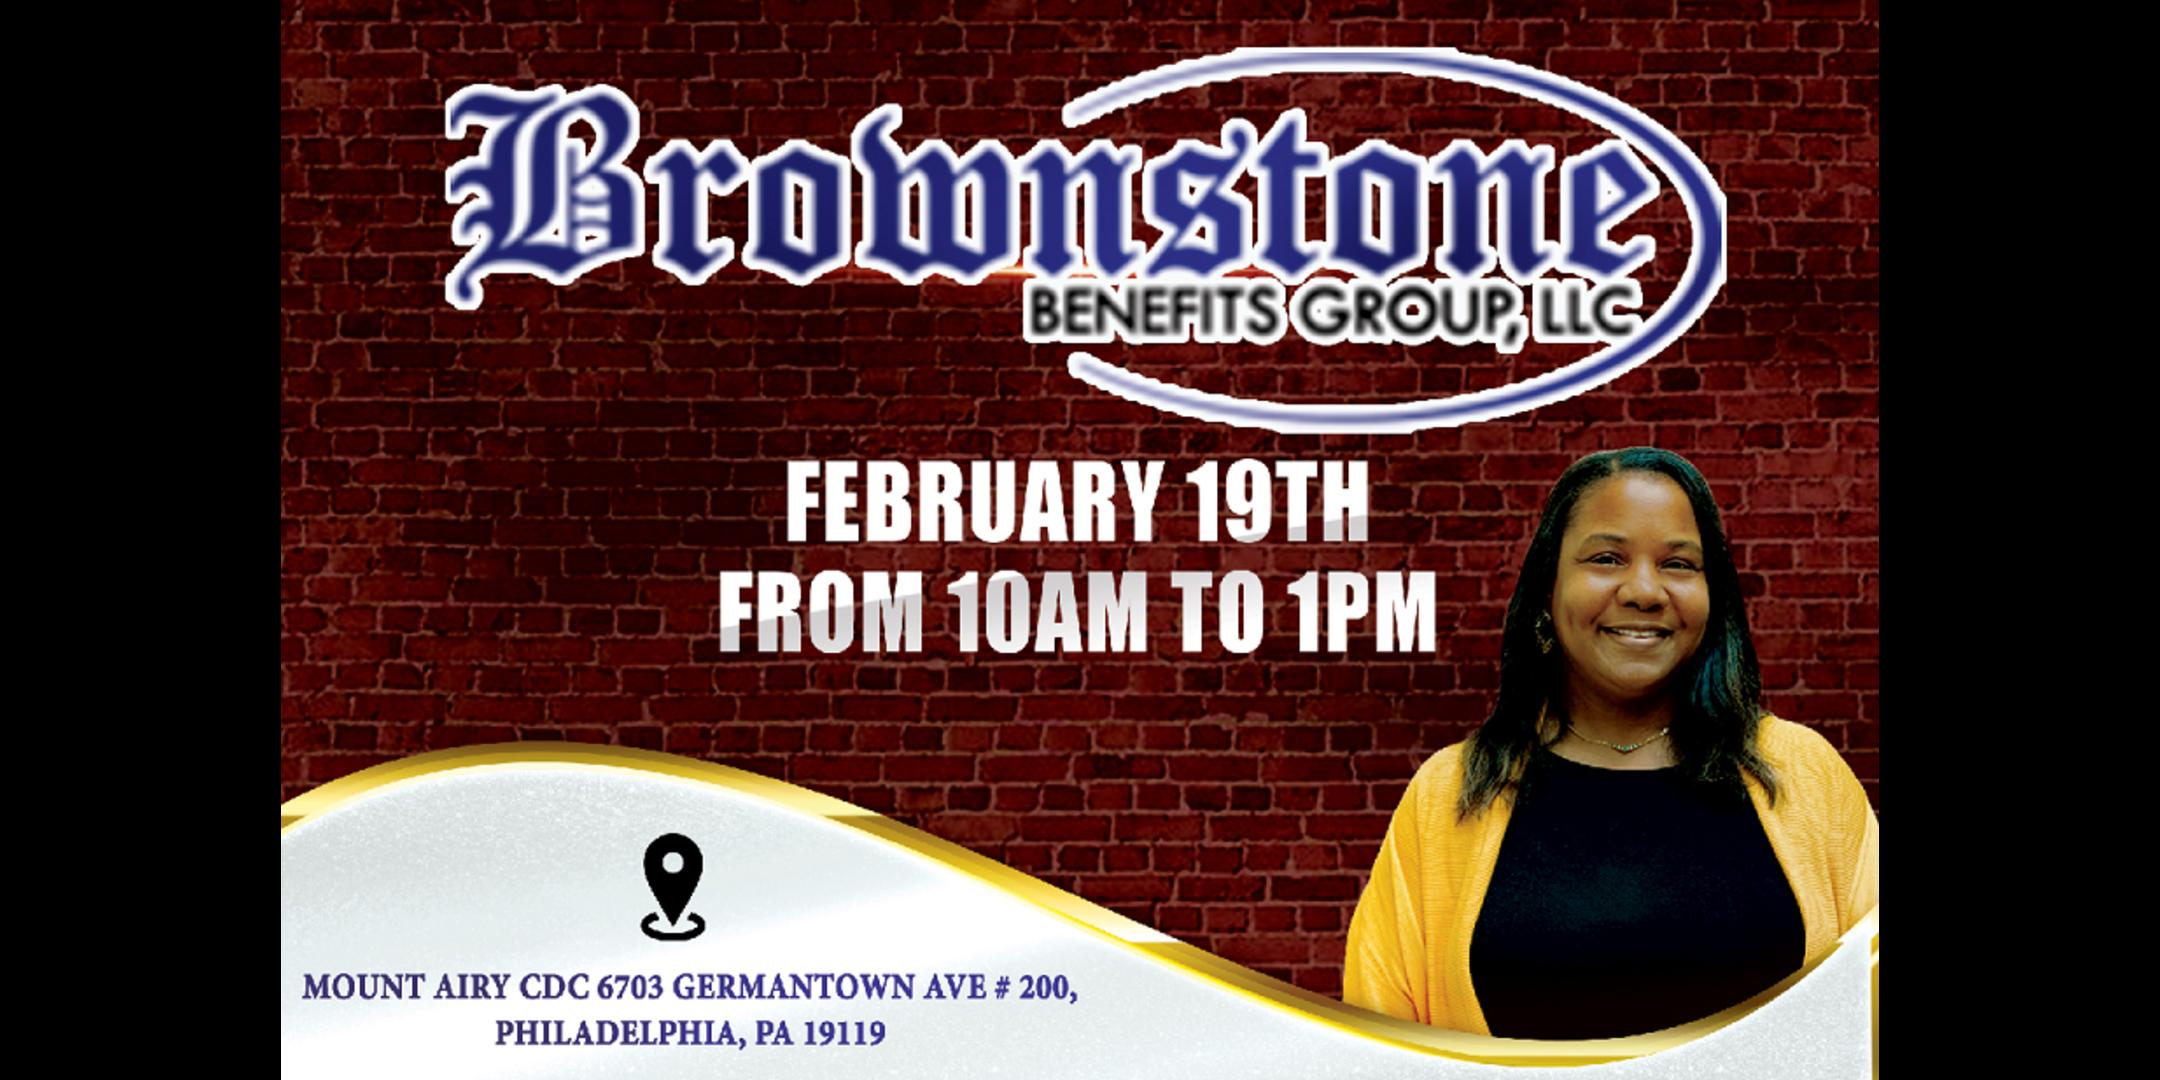 Brownstone Benefits Group Open House